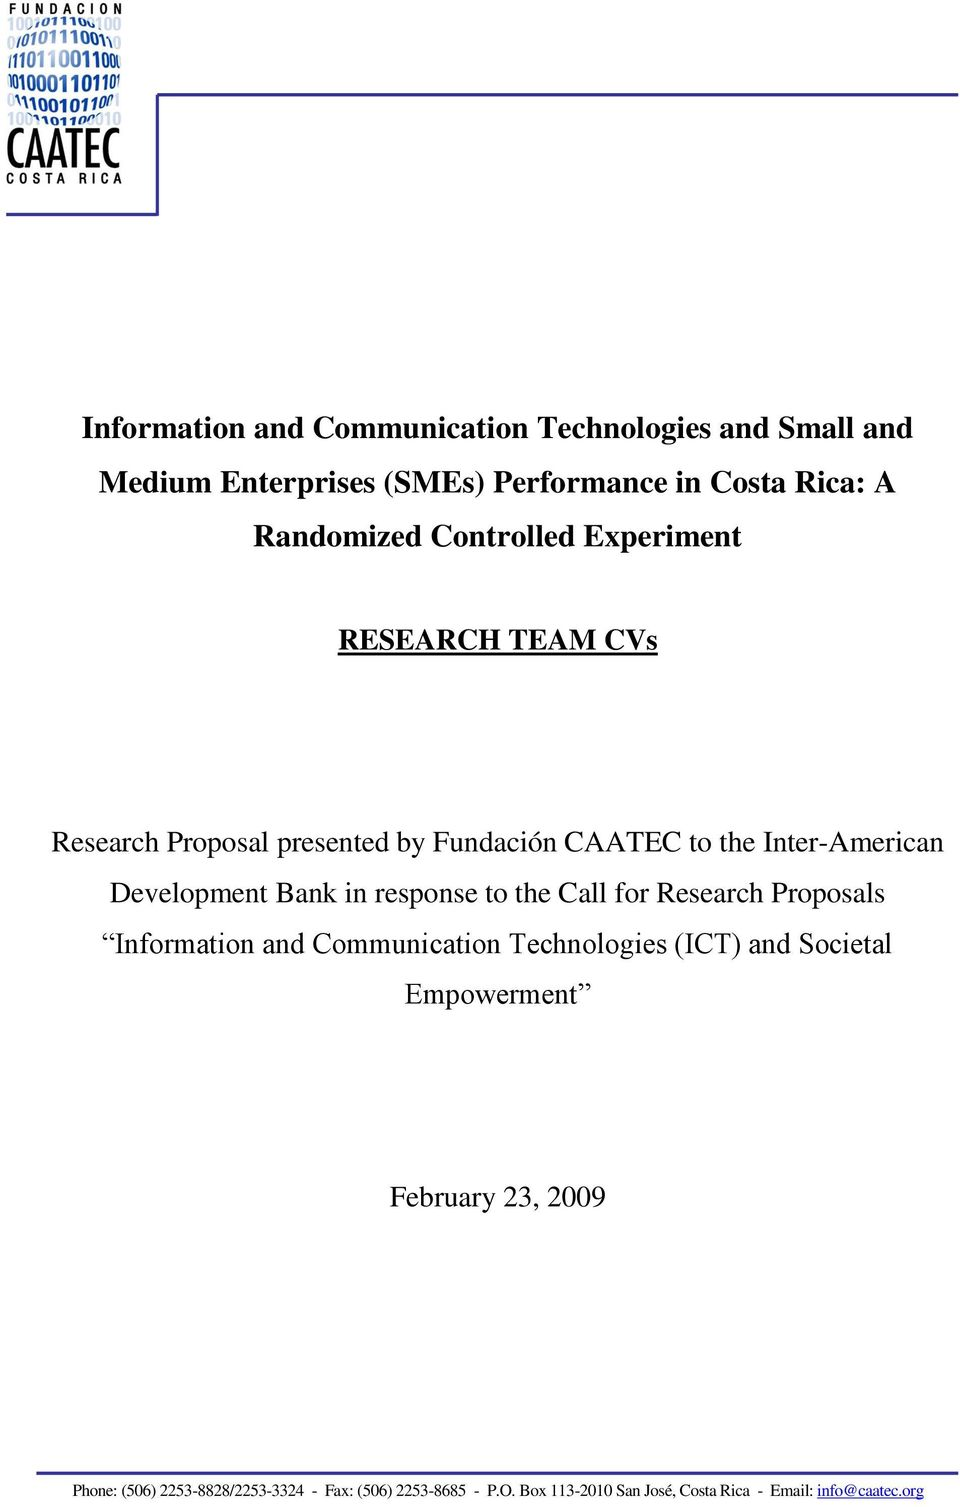 by Fundación CAATEC to the Inter-American Development Bank in response to the Call for Research